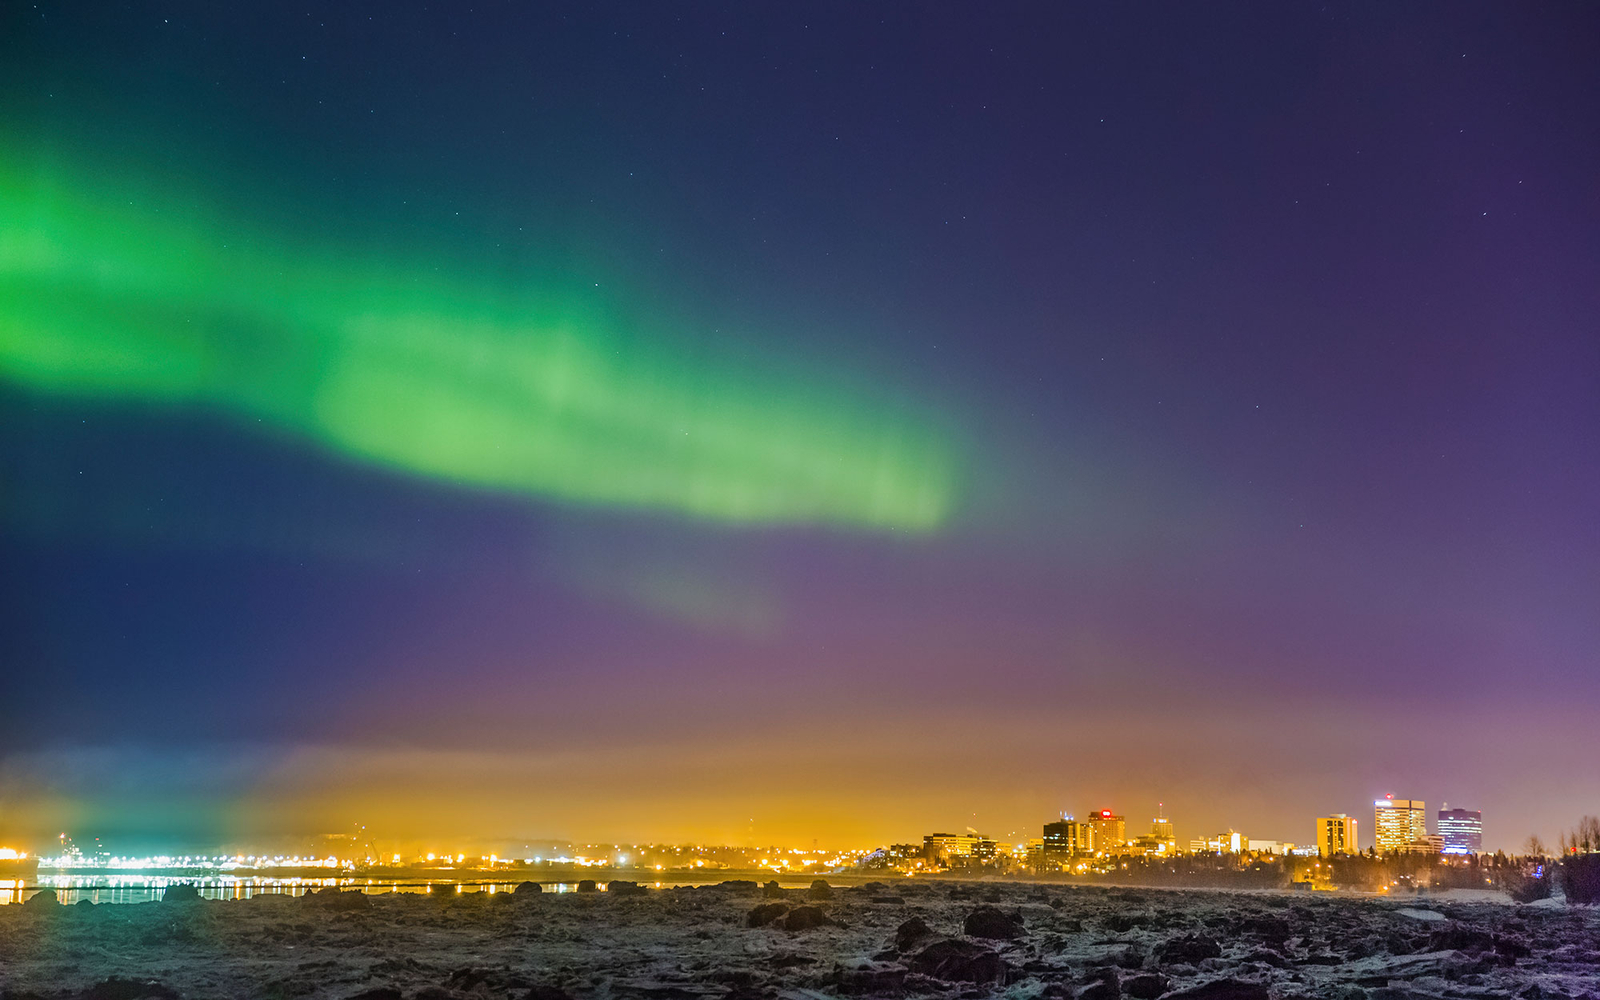 the northern lights over Anchorage, AK